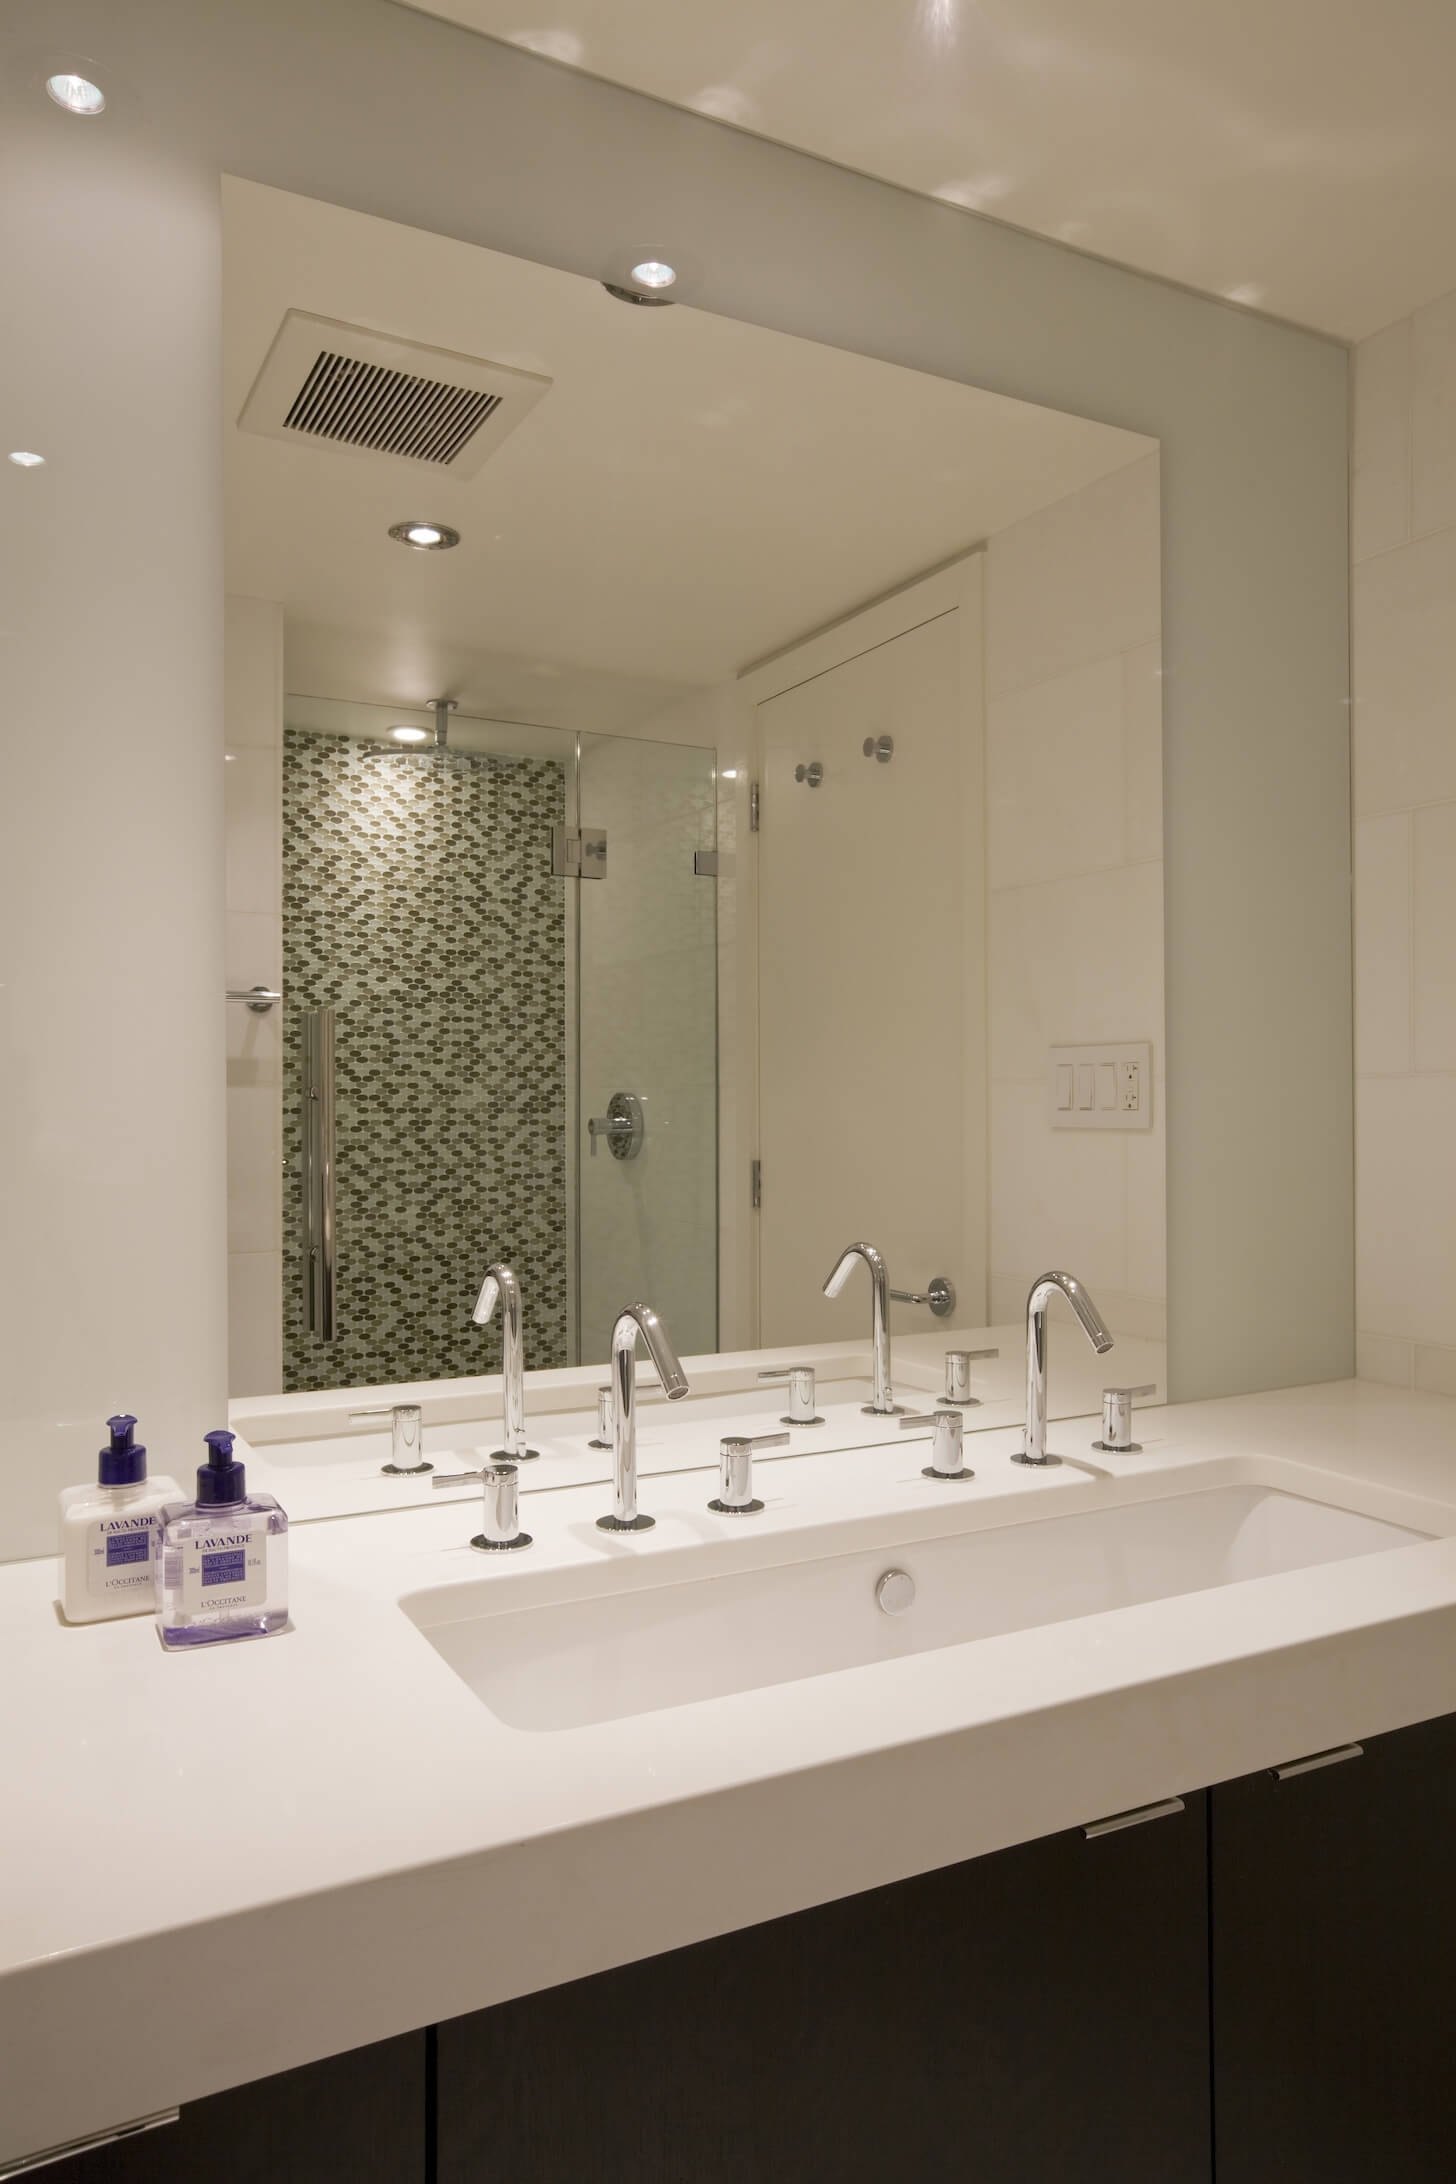 Close view of sink area reveals double-wide basin, while patterned tile, glass door shower is seen in reflection.